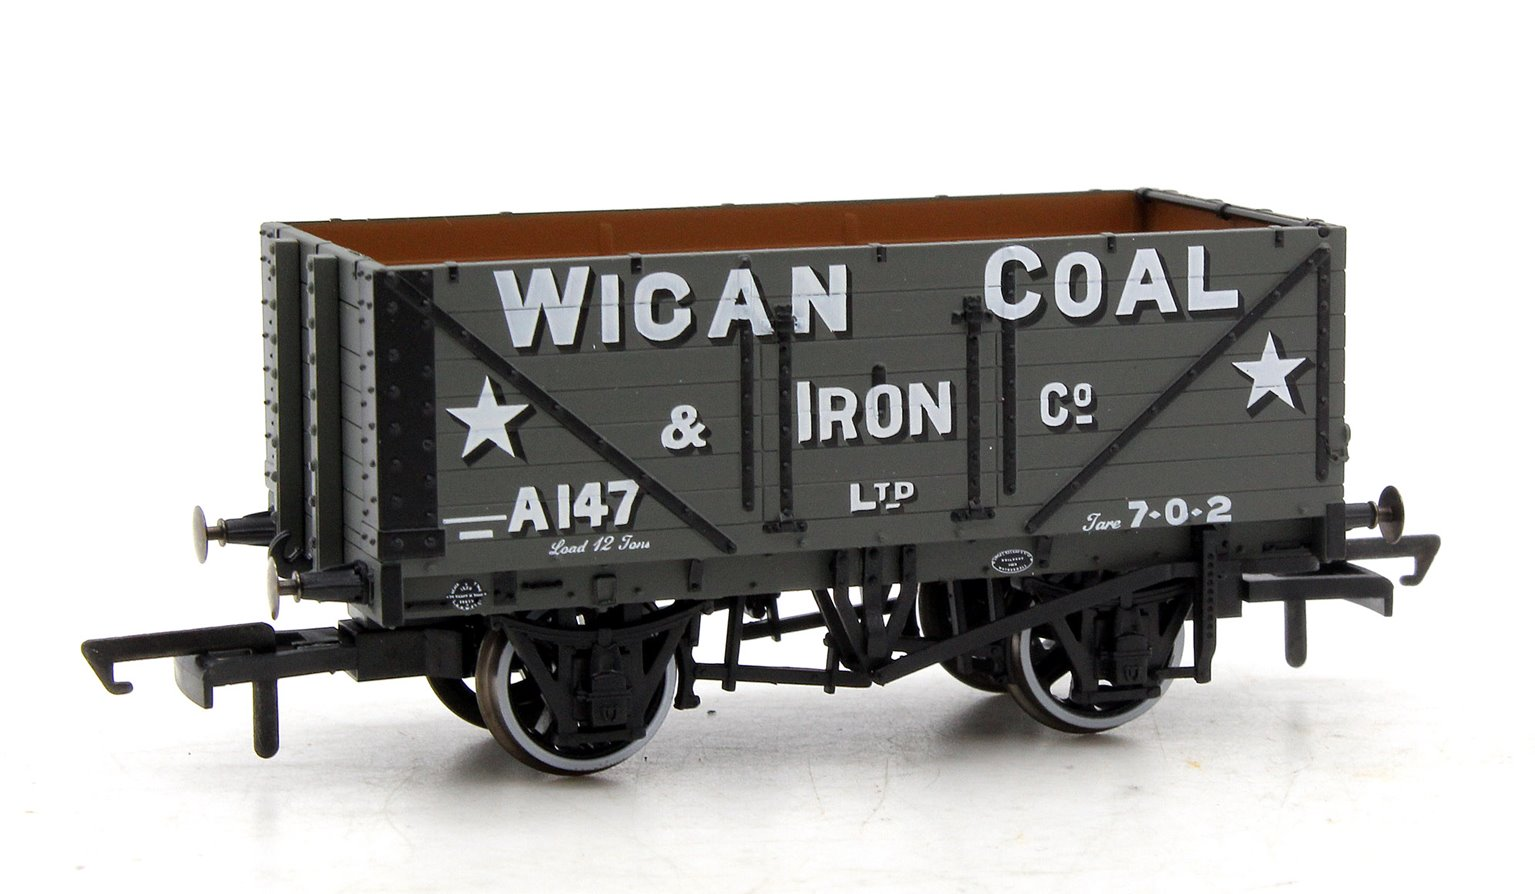 7 Plank Mineral Wagon - Wigan Coal & Iron Co A147